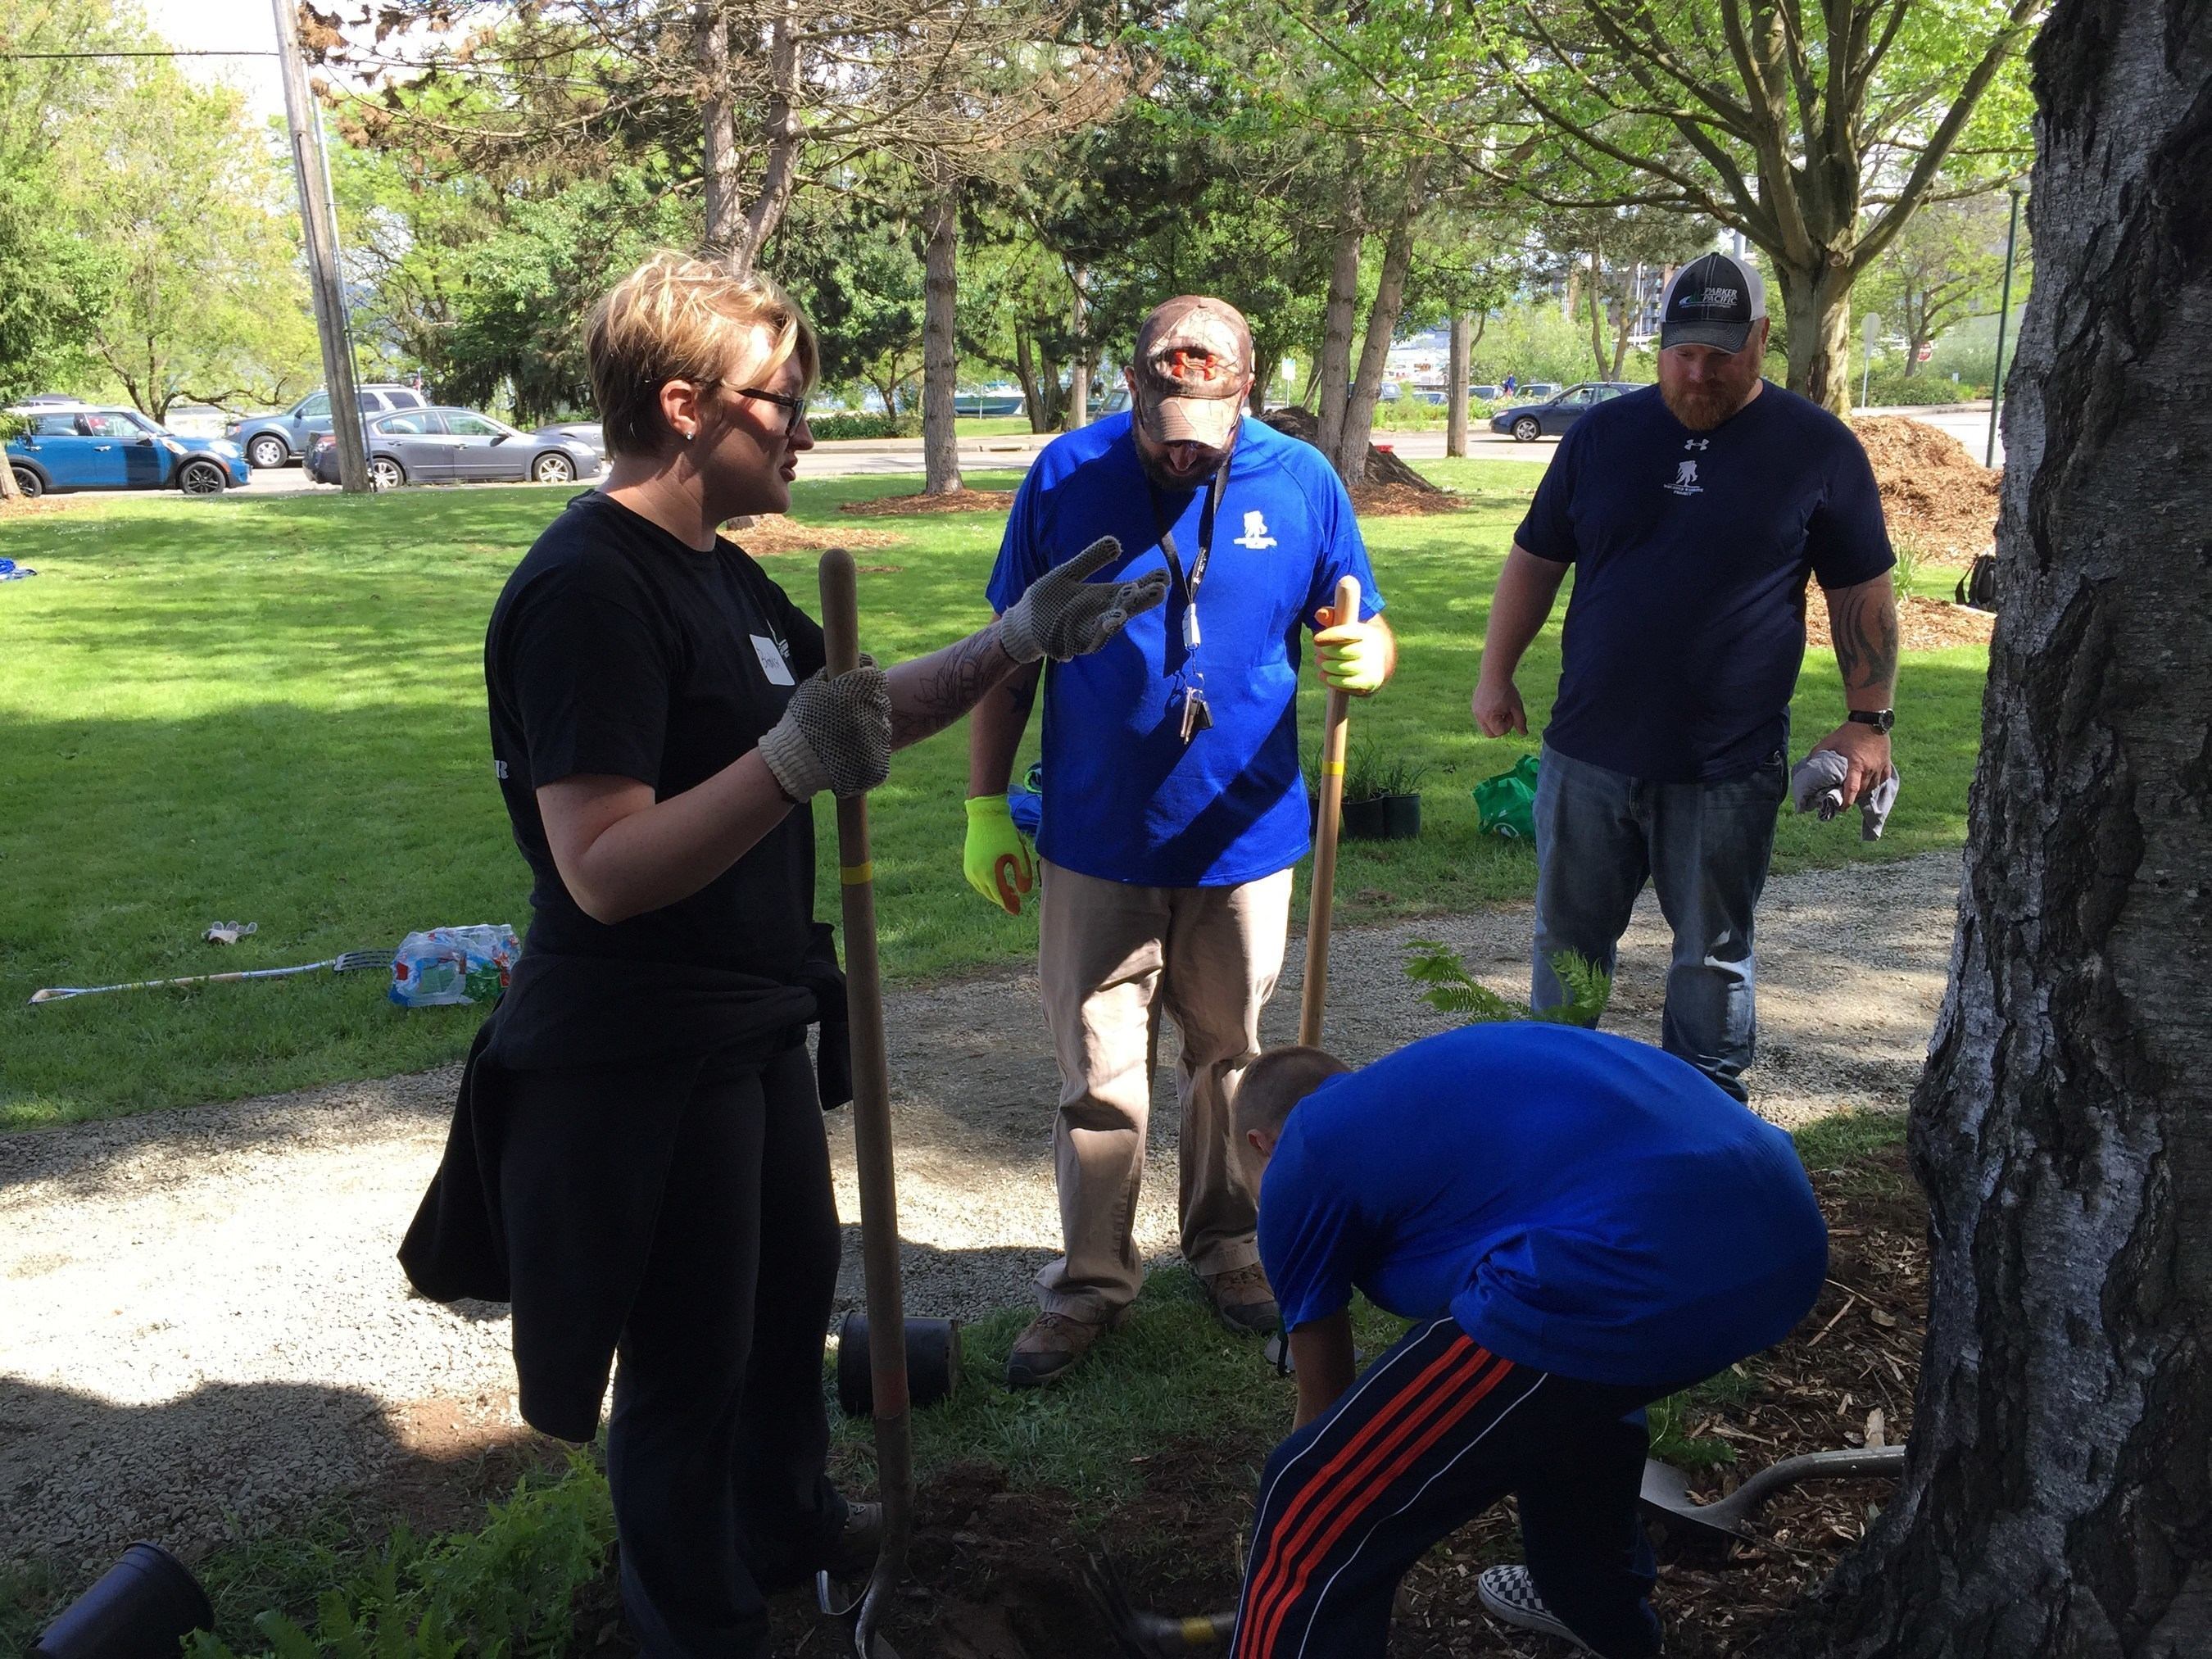 Wounded Warrior Project and The Mission Continues joined forces for a volunteer service project at Rainier High School in Seattle.